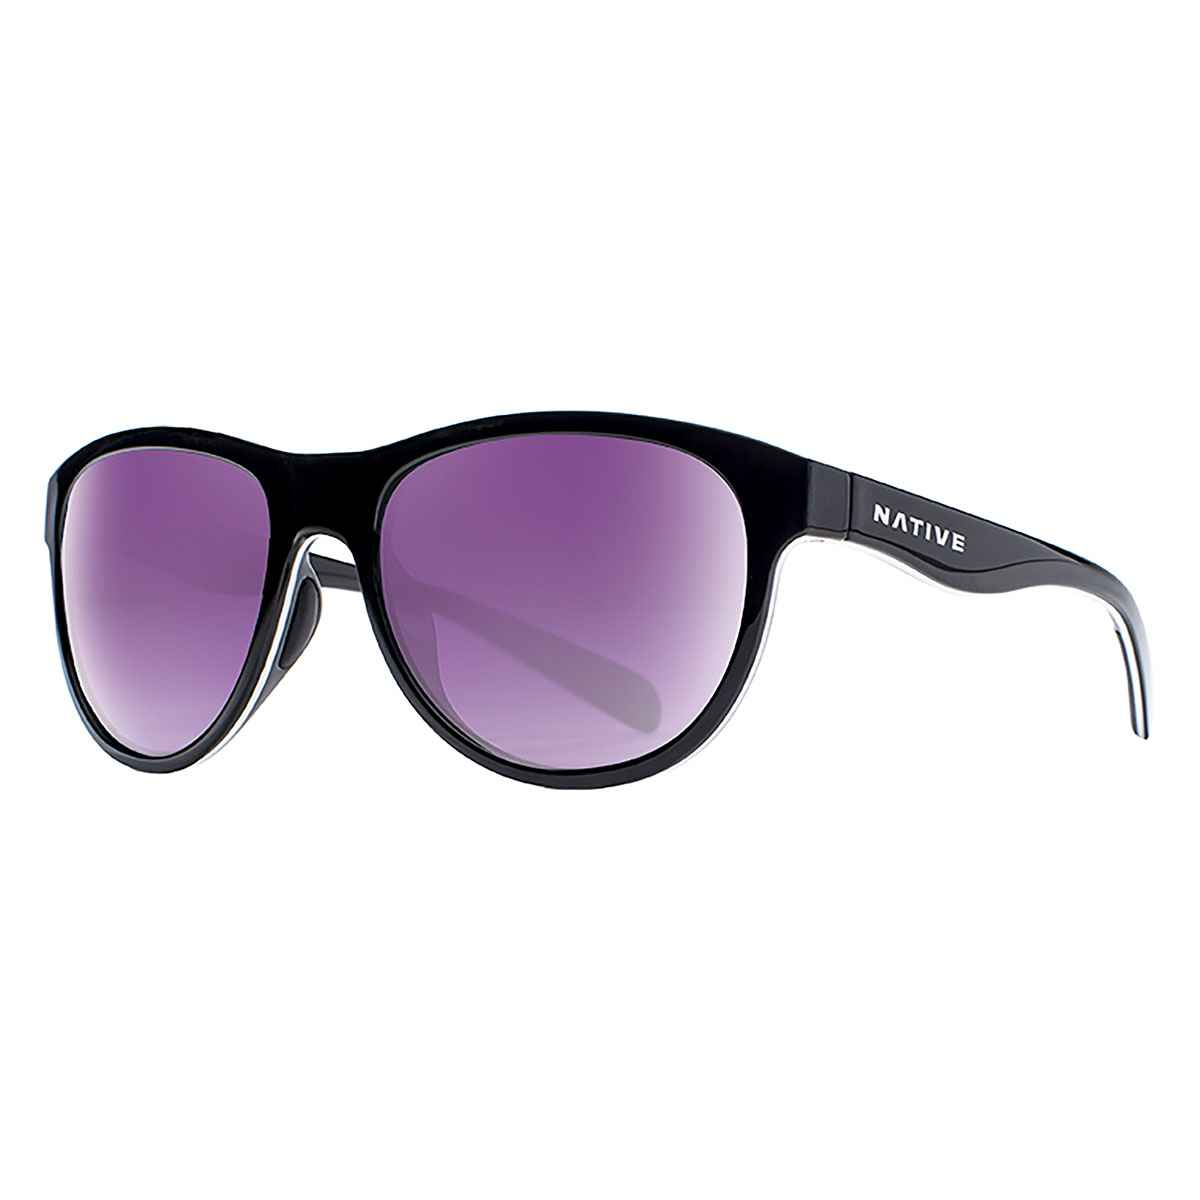 f26caff3e33 ... Pol N3 Violet Reflex Lens - 193300531. The most innovative and advanced  polarized lens on the market. N3 lenses block up to 4X more infrared light  than ...